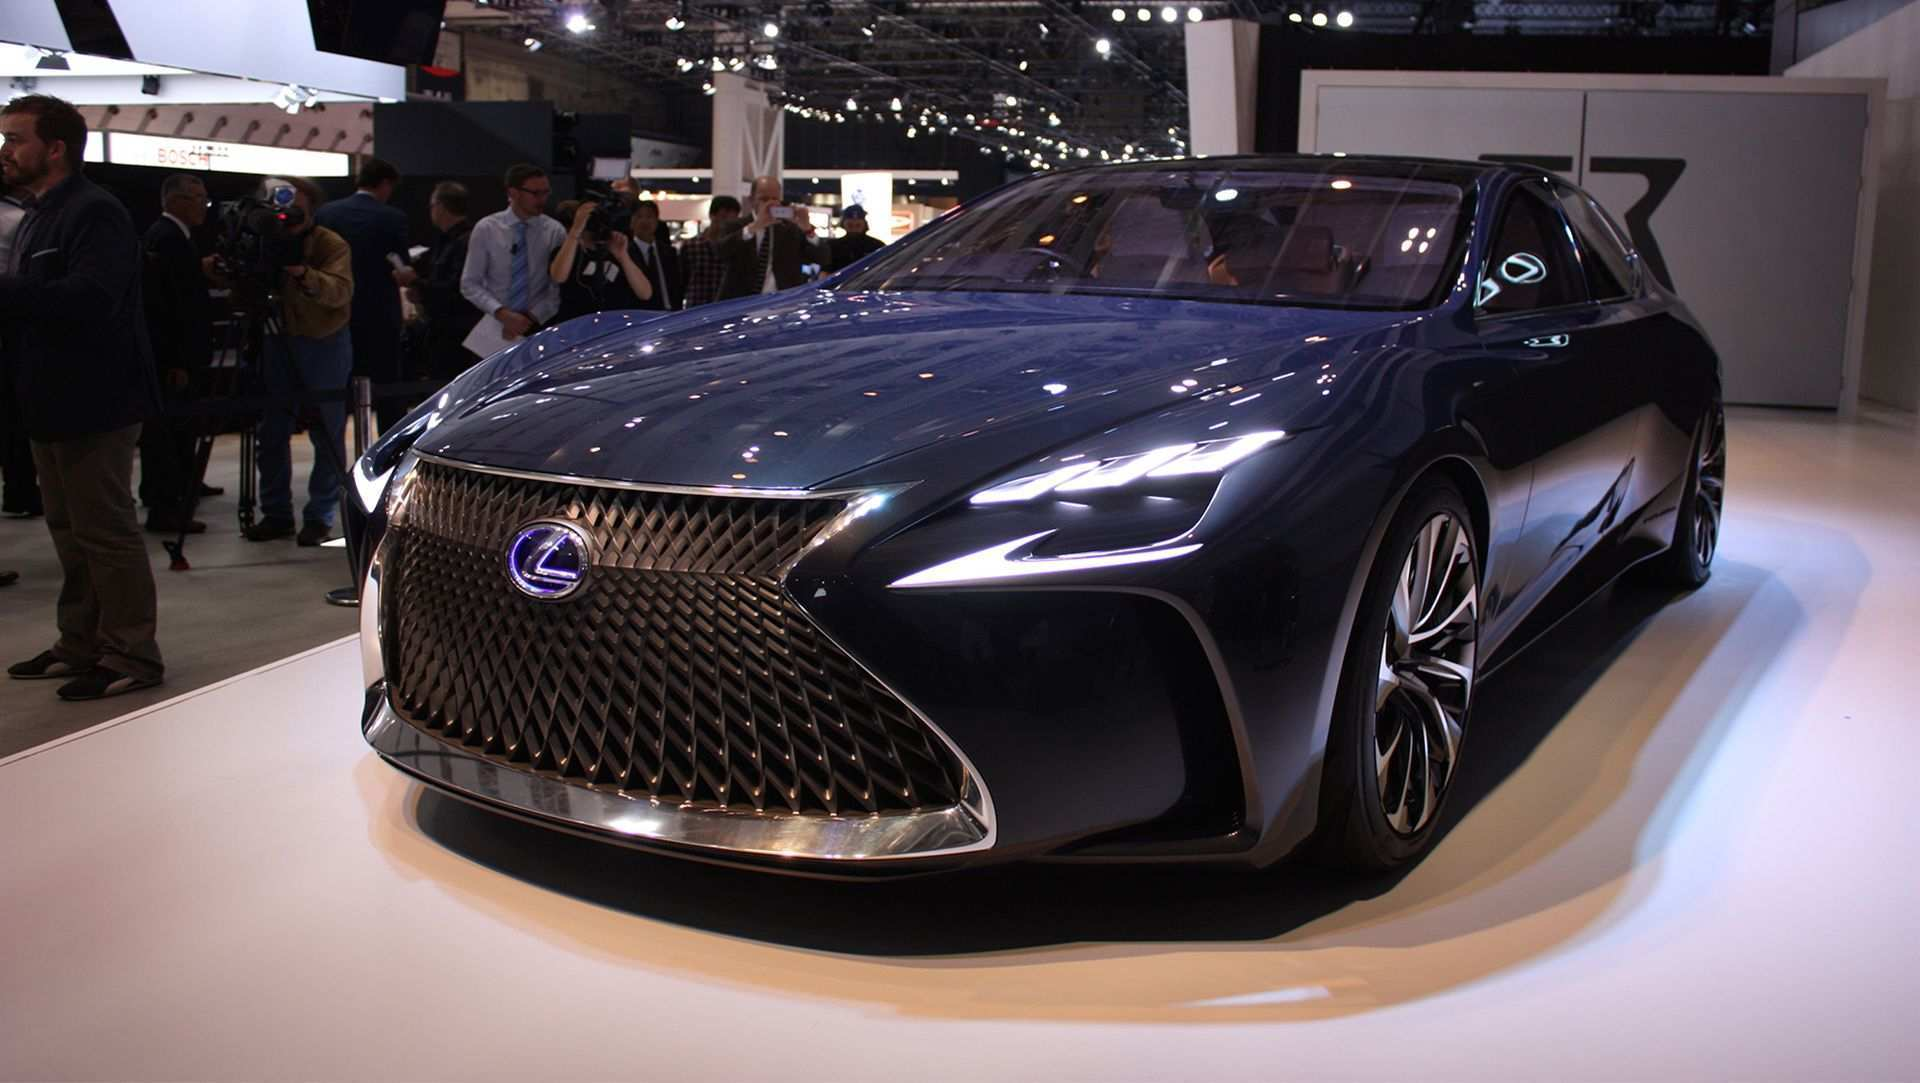 75 Concept of Lexus 2020 Es New Concept New Review by Lexus 2020 Es New Concept